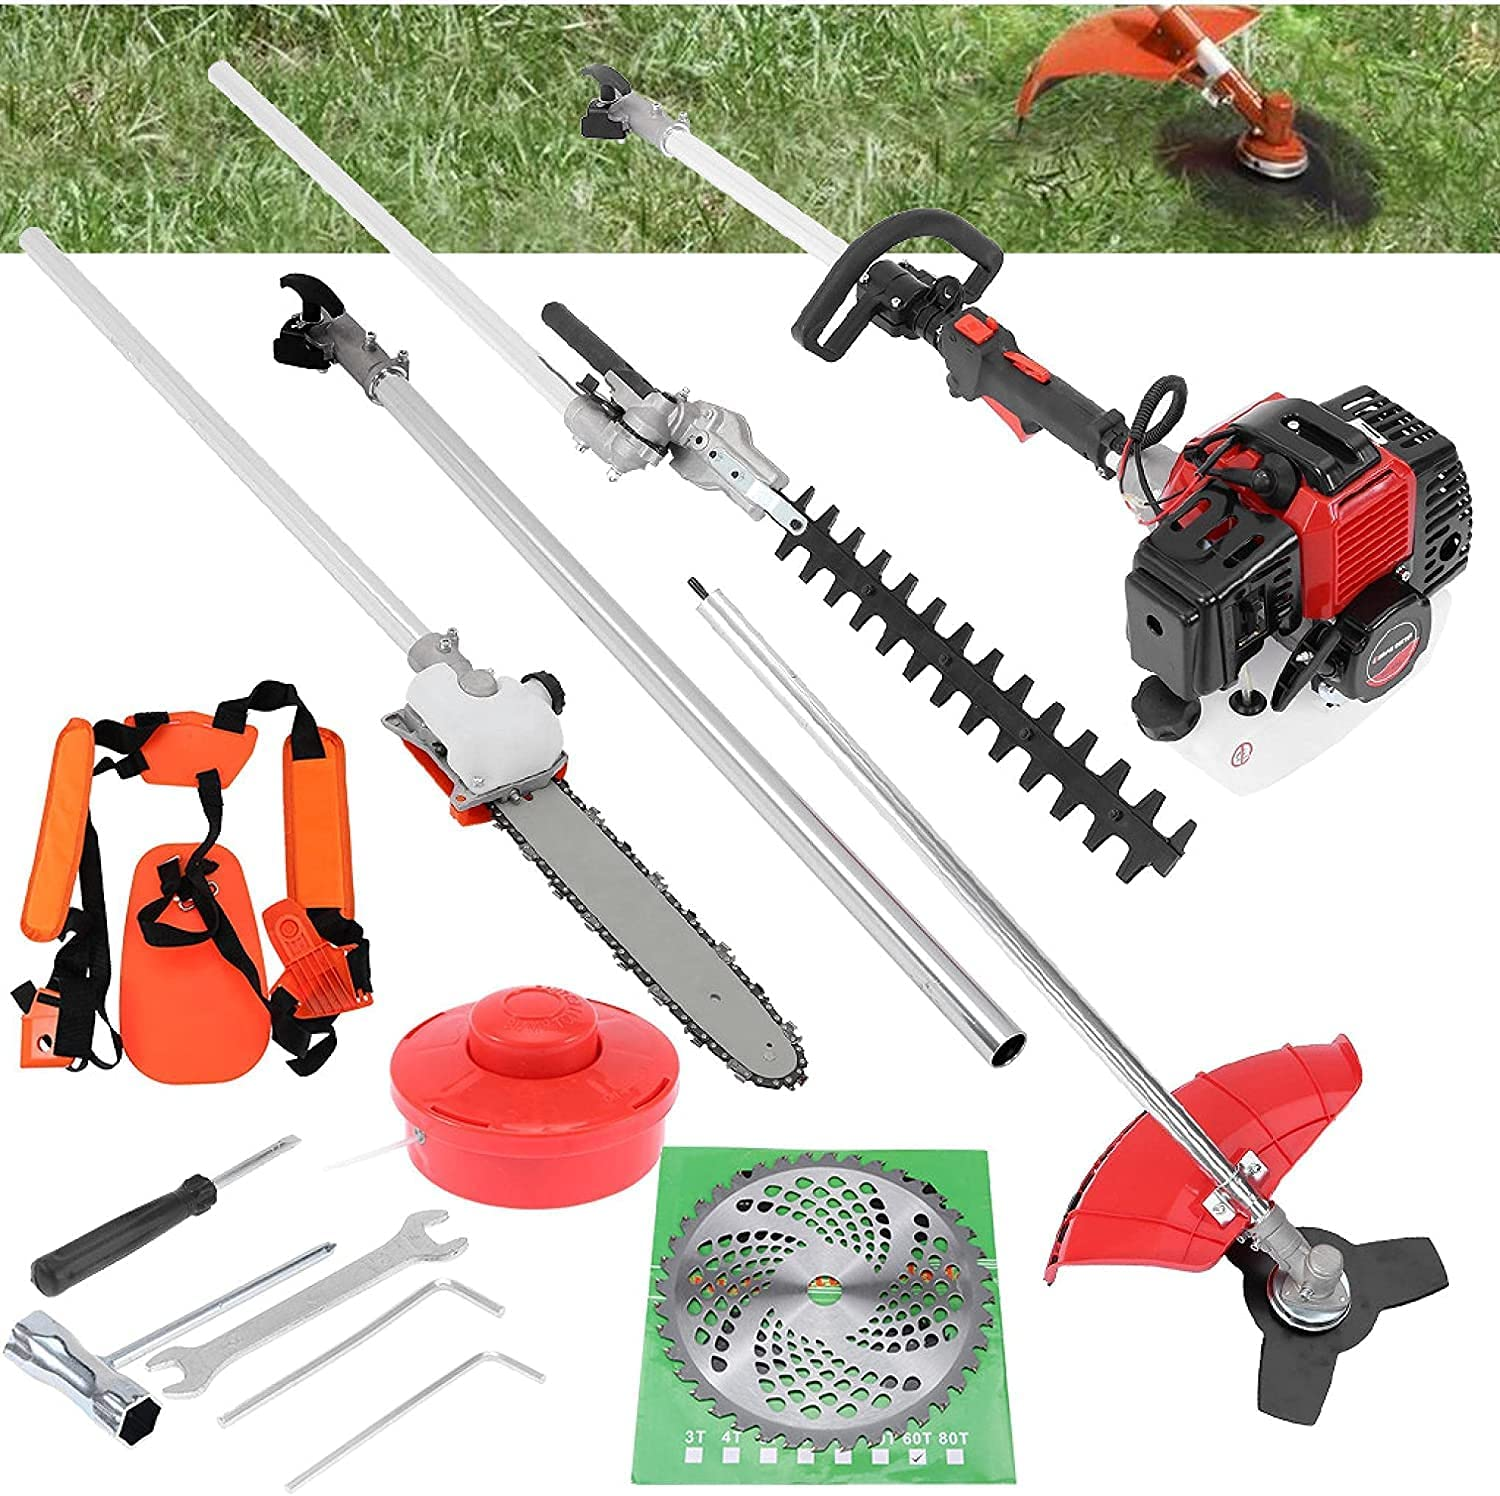 Petrol Hedge Trimmer Chainsaw Sale SALE% OFF Brush Pole Cutter Outdoor Tool Our shop most popular Saw